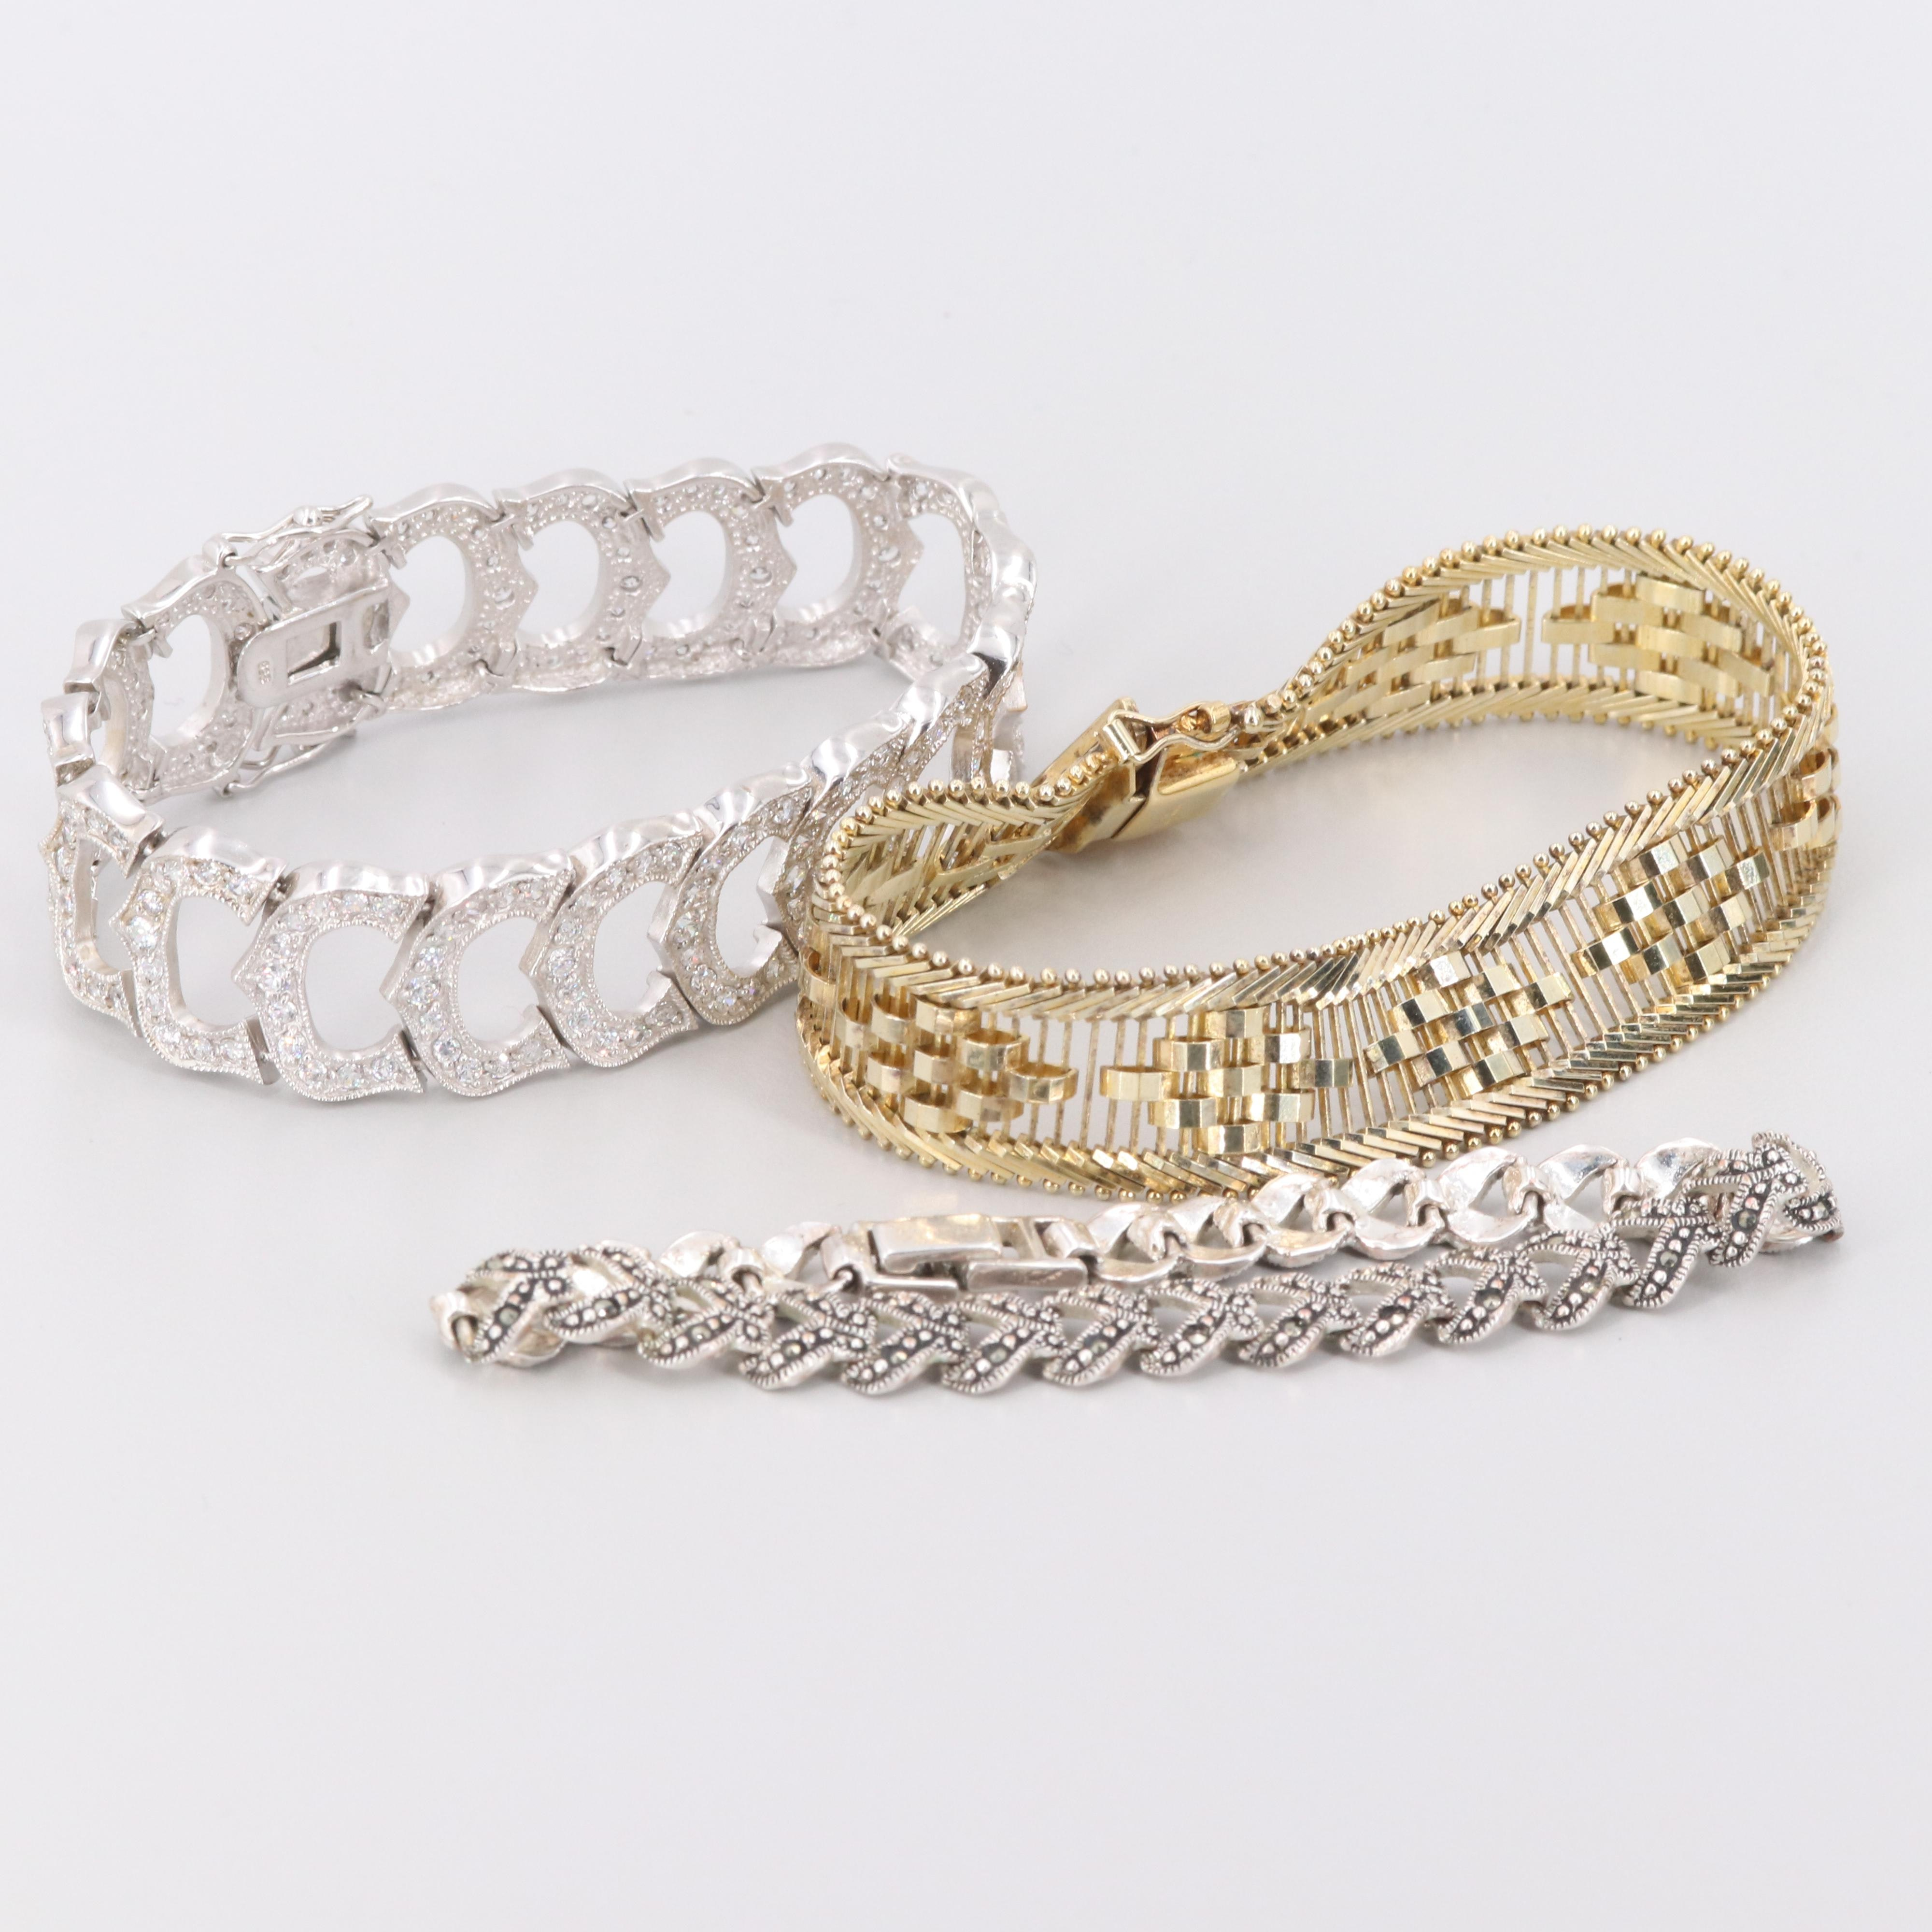 Sterling Silver and Silver Tone Cubic Zirconia and Marcasite Bracelets